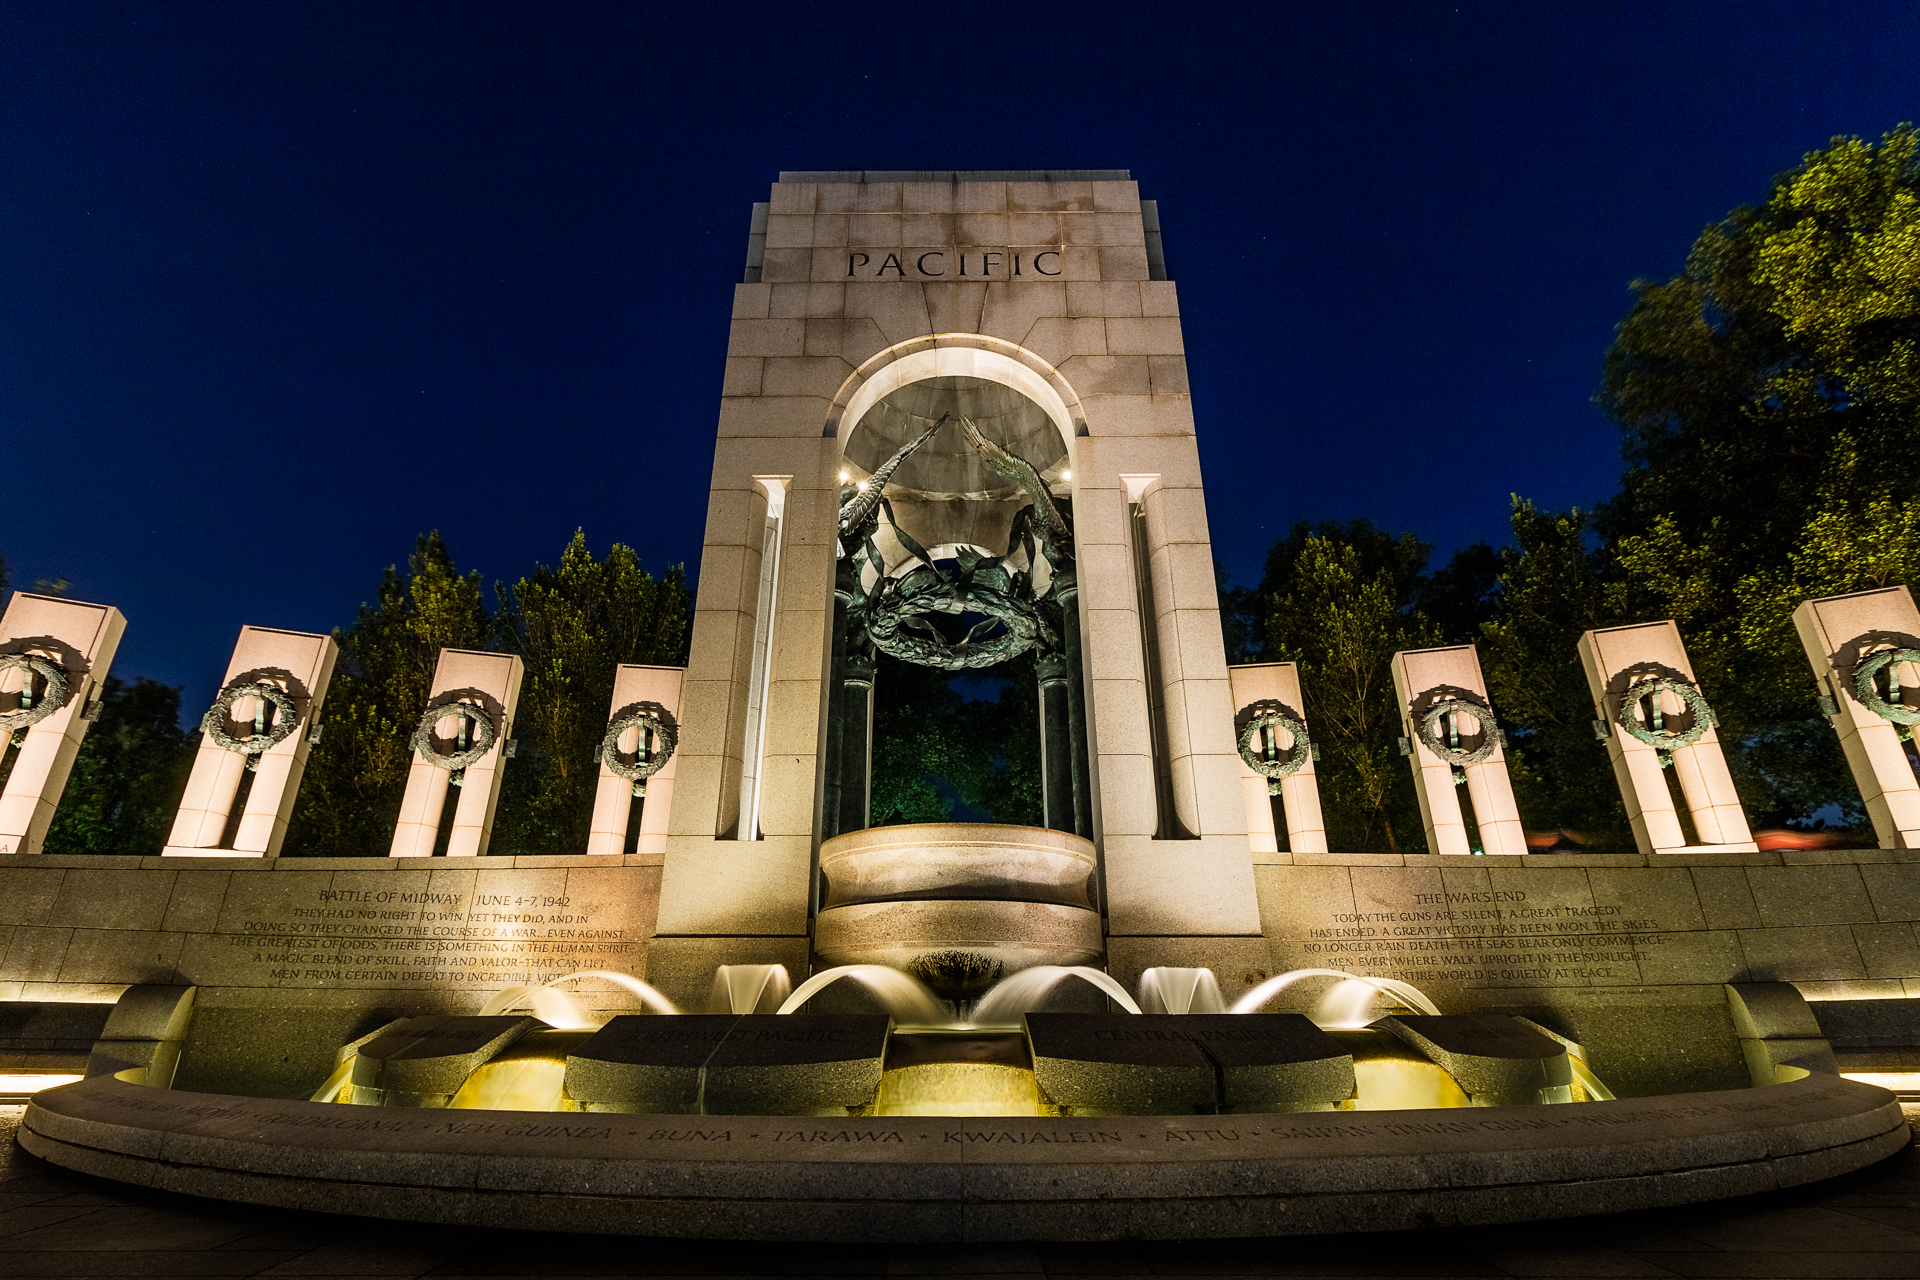 Pacific Theater – Long exposure of the WWII memorial at night{&nbsp;}(Image: Zack Lewkowicz)<p></p>